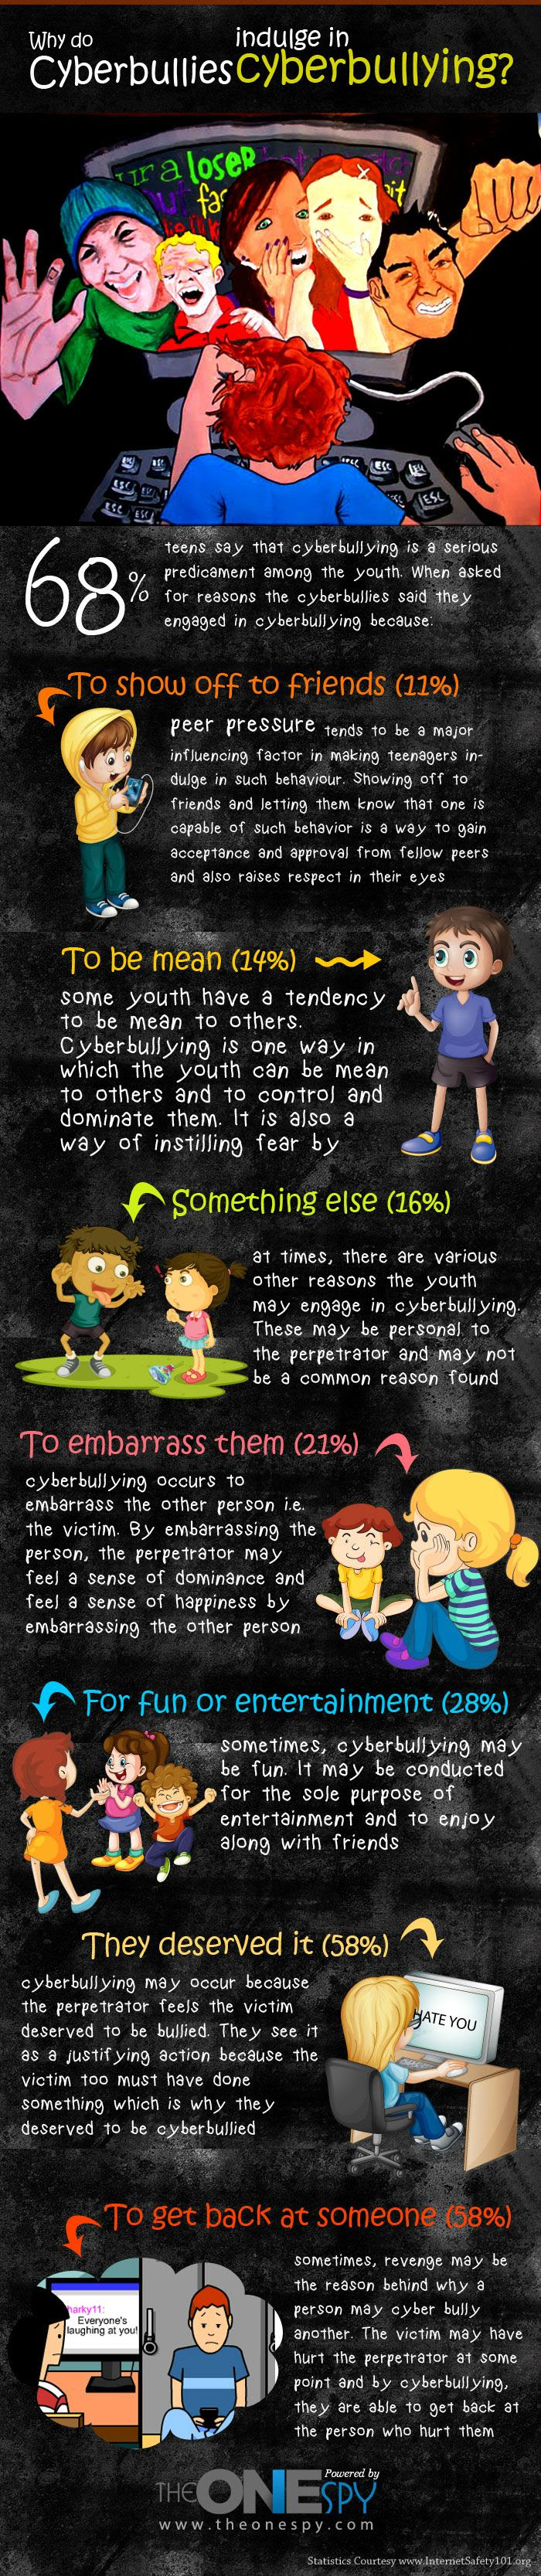 Stories and Reasons of CyberBullying by CyberBullies with Facts and Statistics